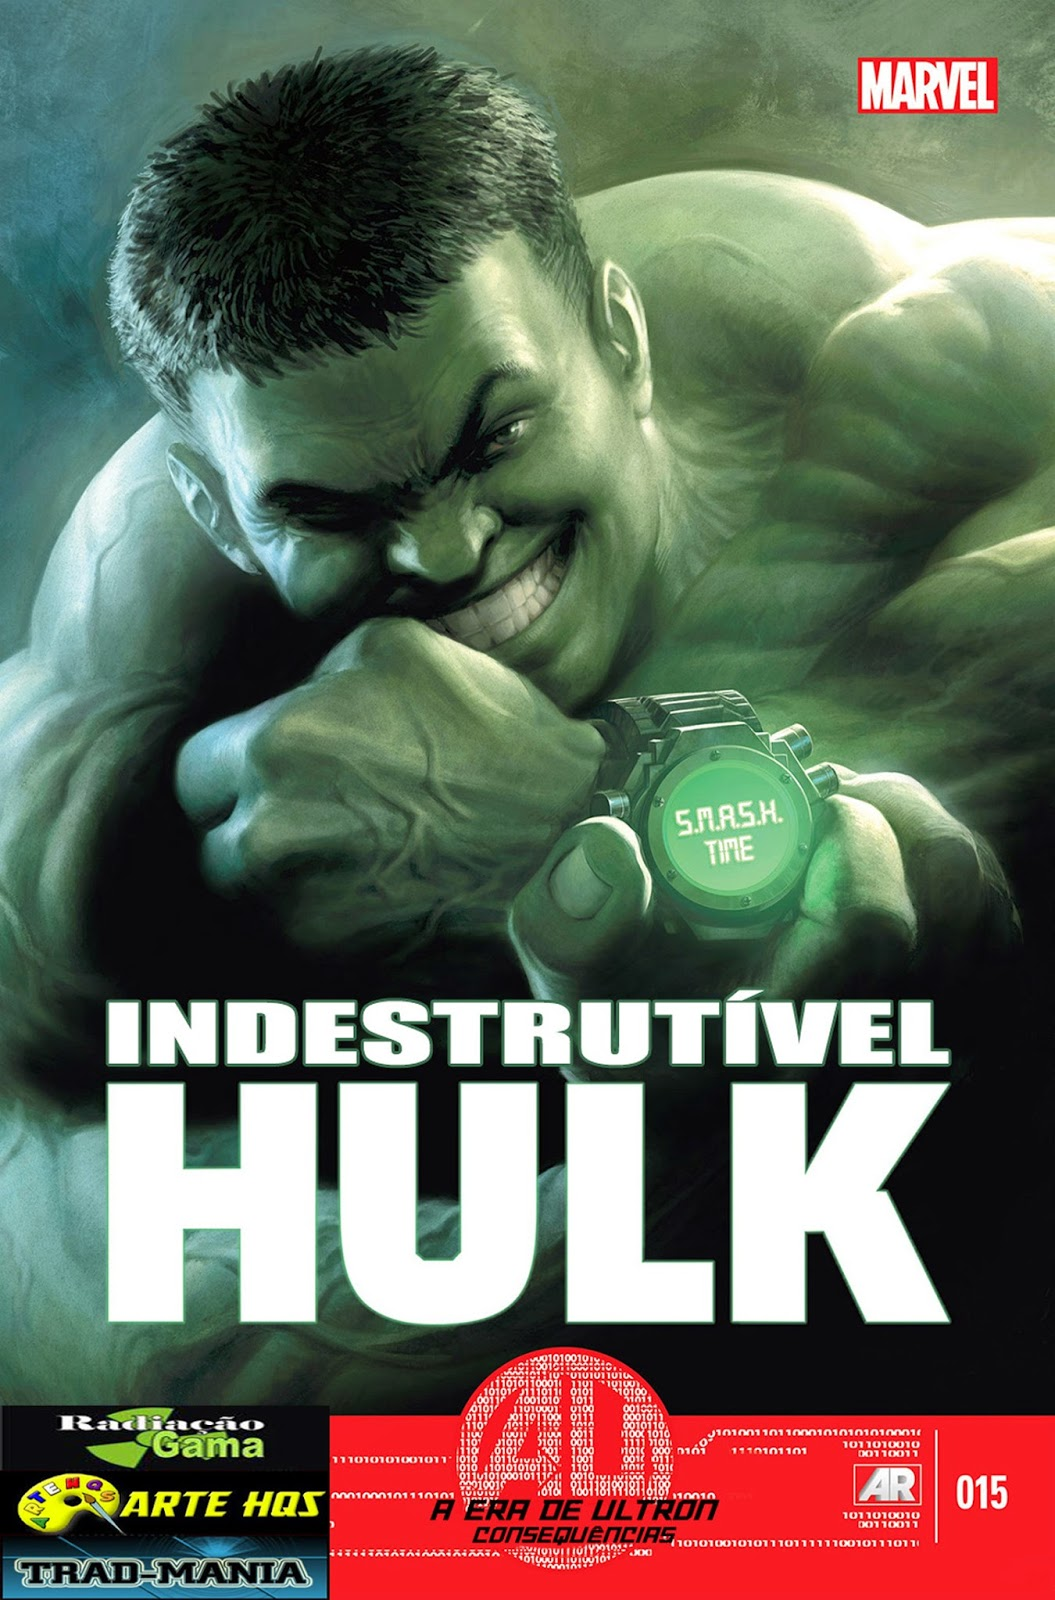 Nova Marvel! O Indestrutível Hulk - Agente do T.I.M.E #15